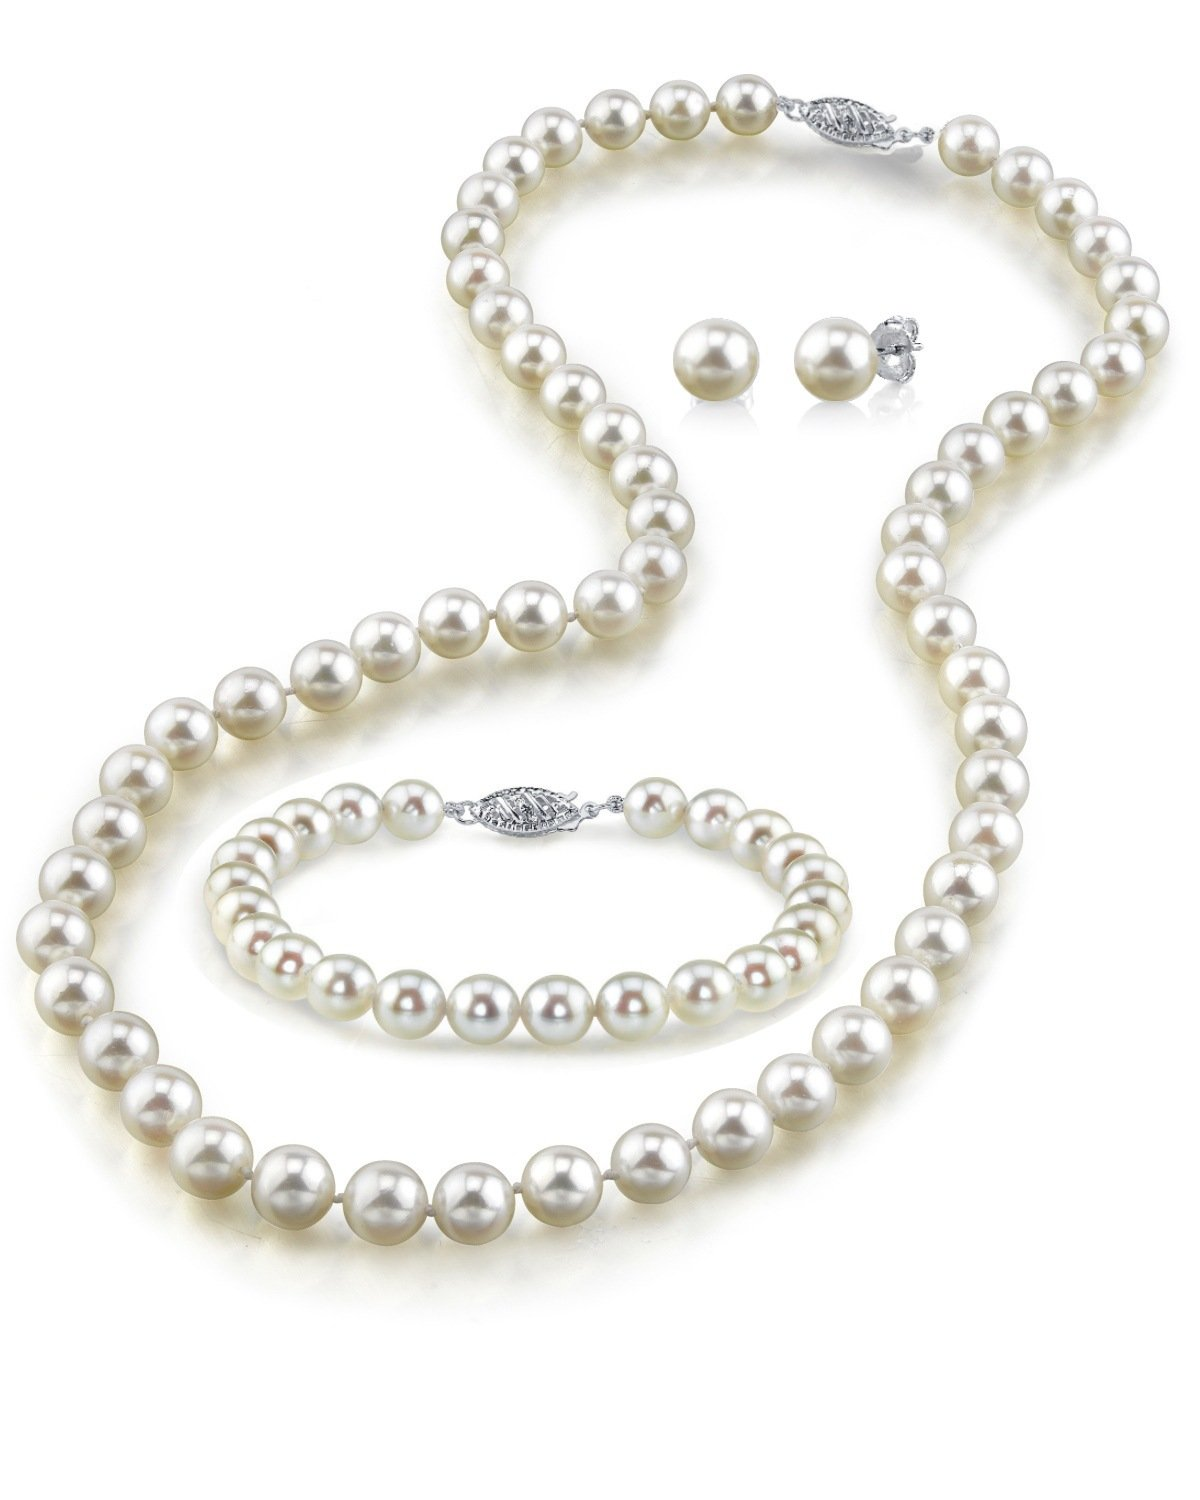 14K Gold White Freshwater Cultured Pearl Necklace, Bracelet & Earrings Set, 18'' - AAA Quality by The Pearl Source